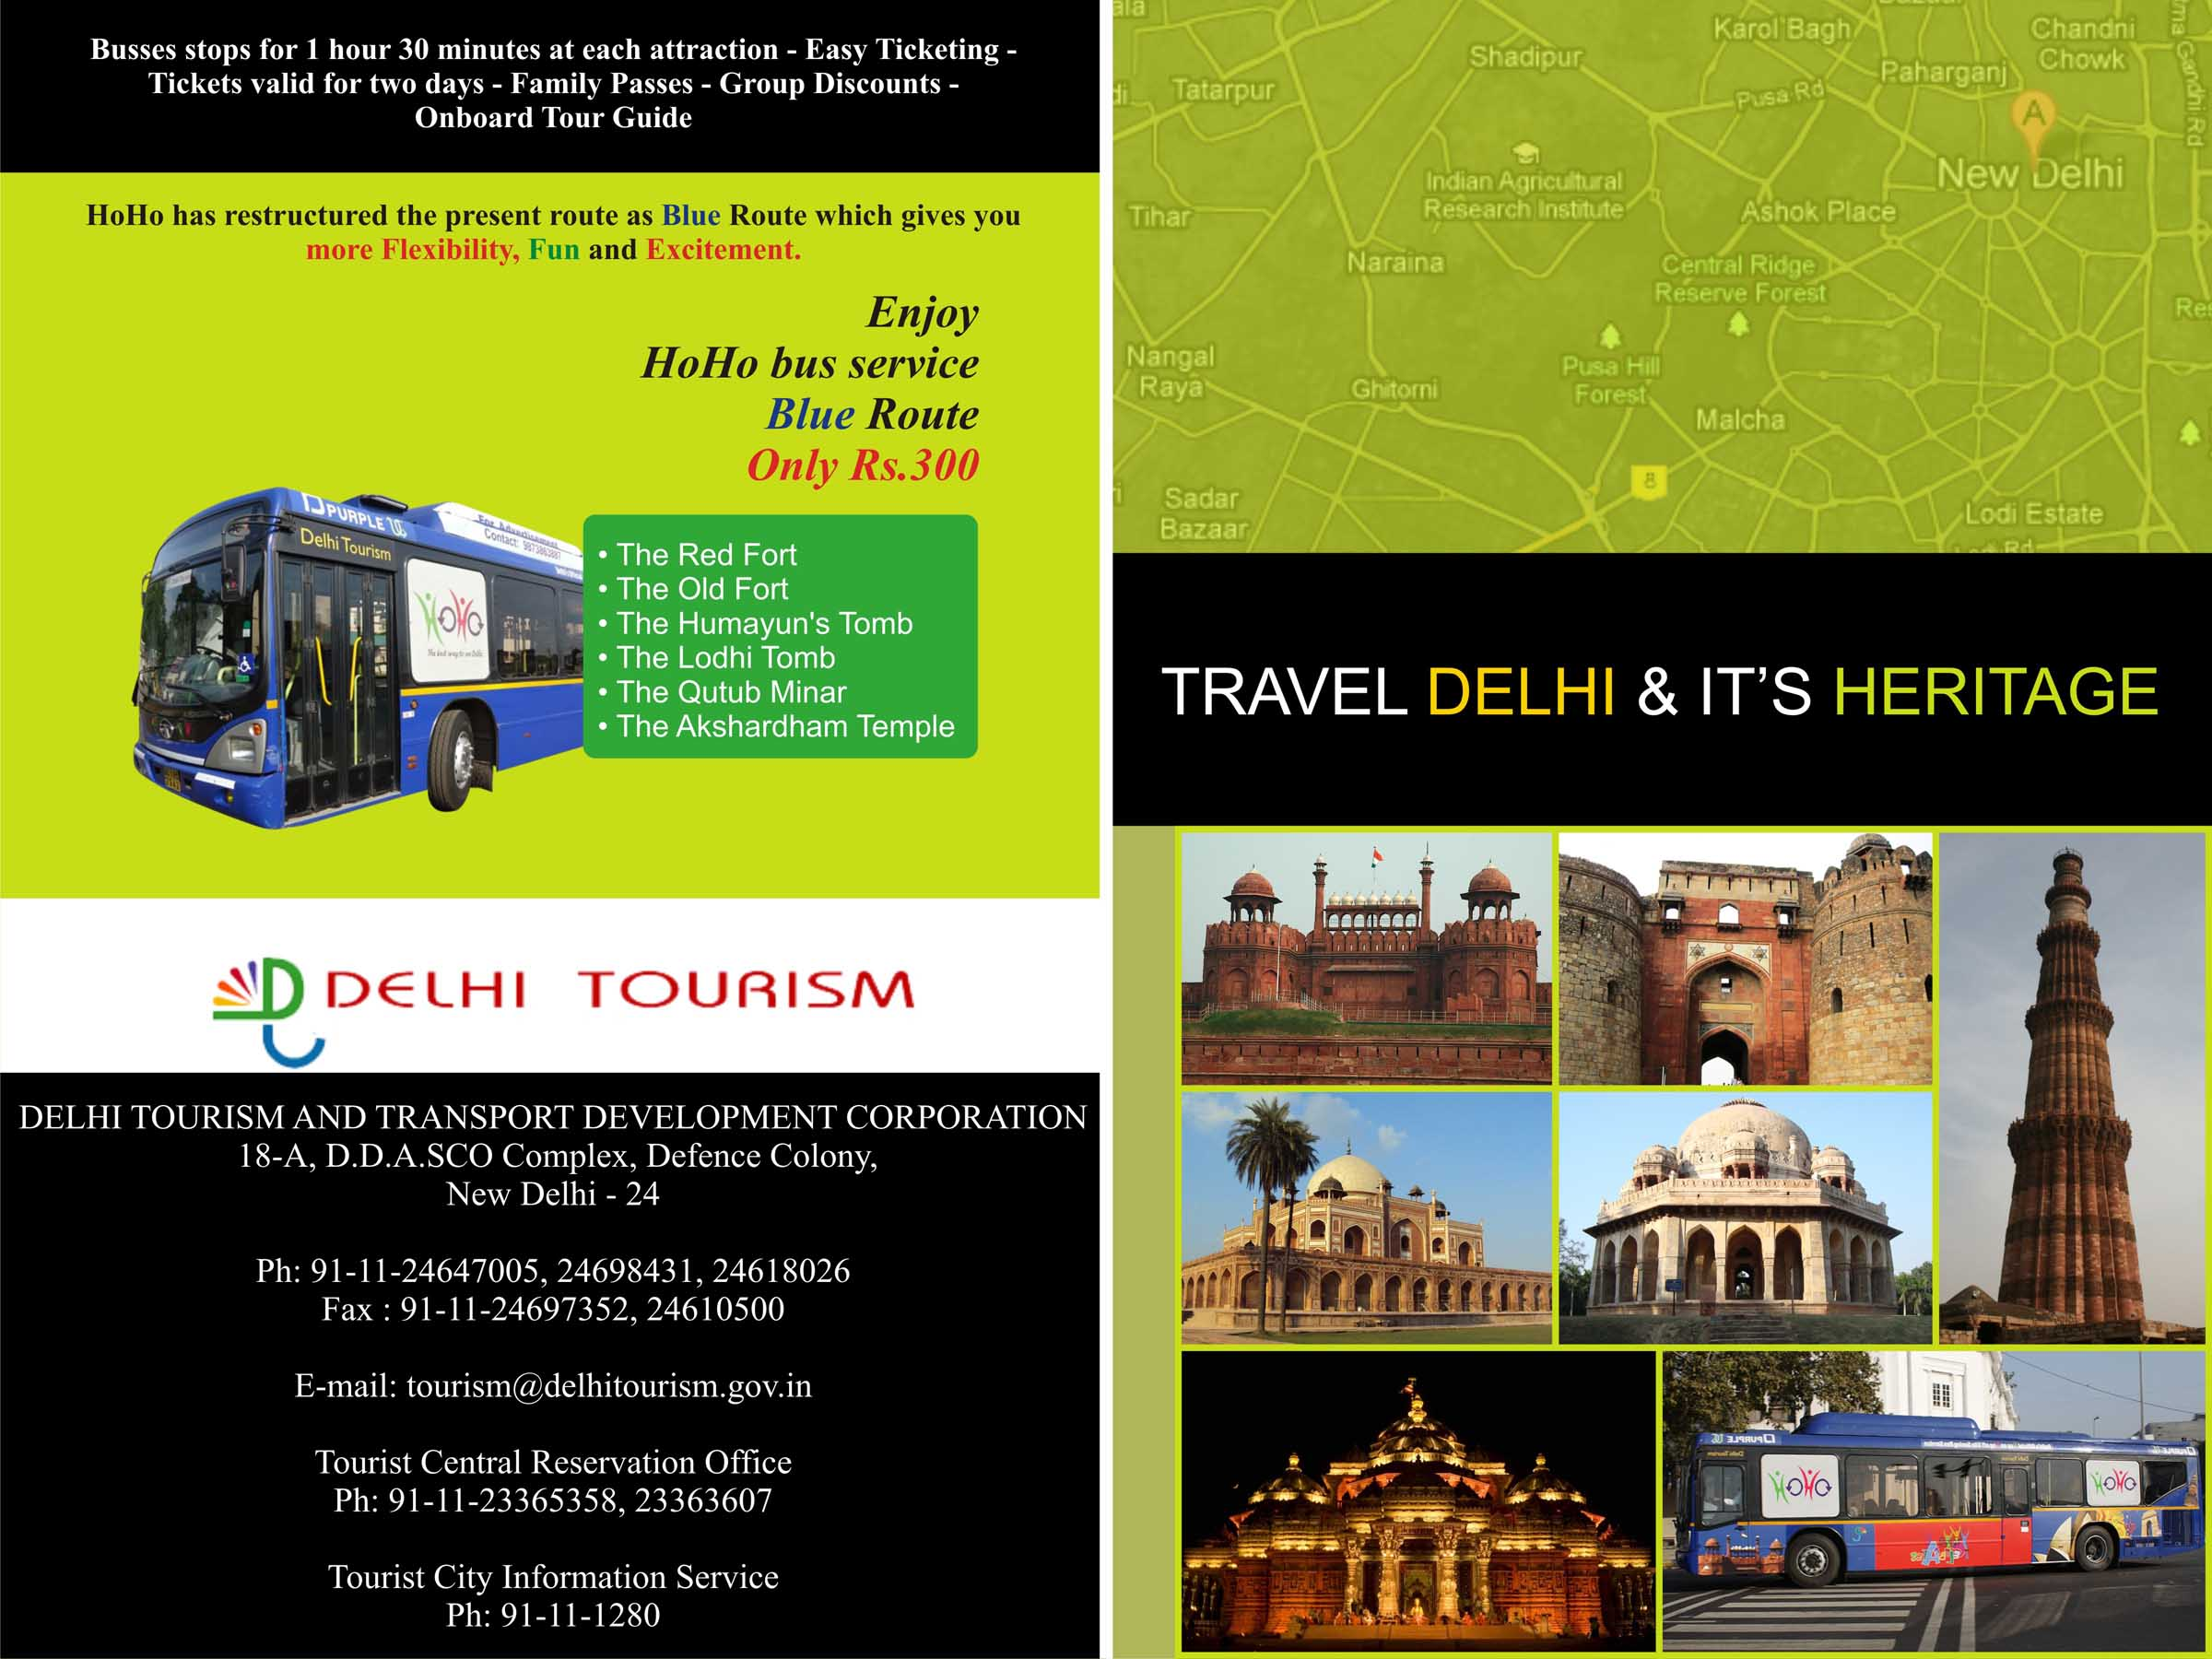 Folded brochure printed for as low as Rs 5 50/- per piece | Whizz Prints